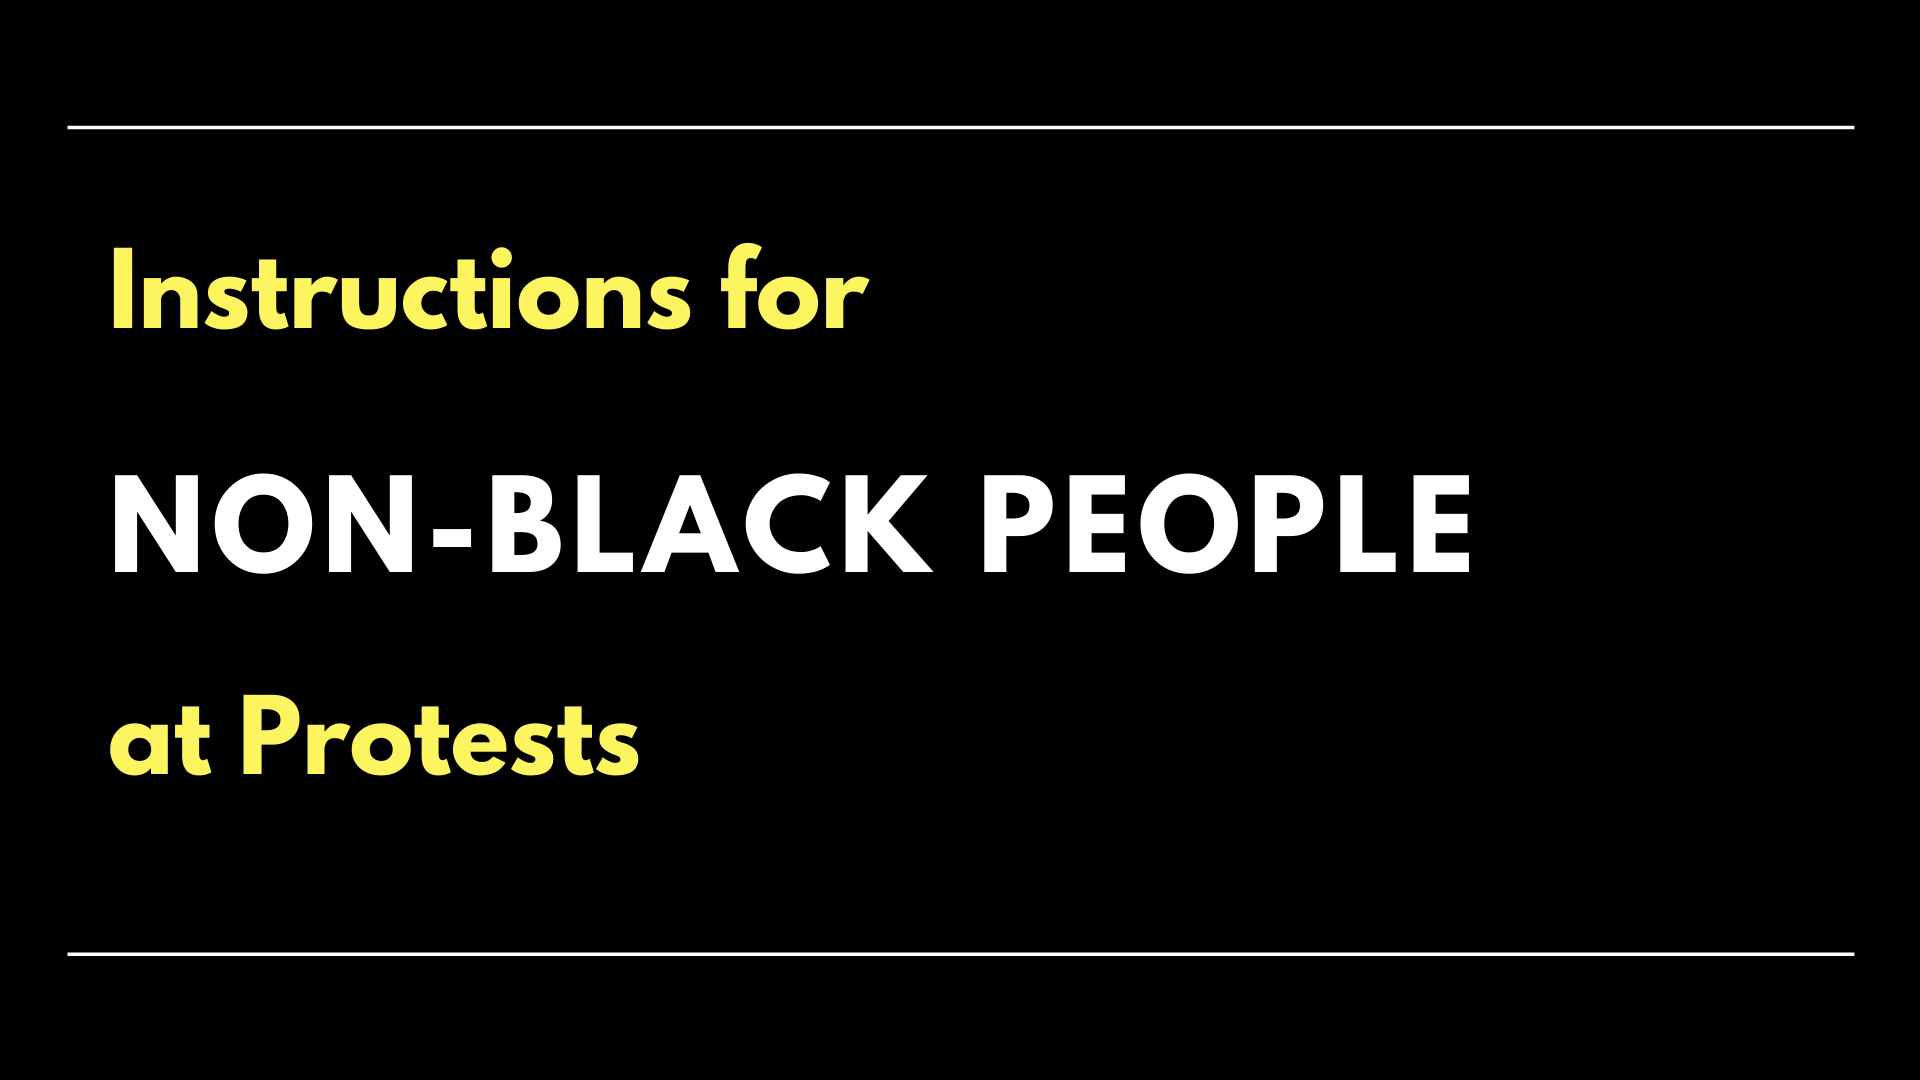 Text Graphic: Instructions for Non-Black People at Protests